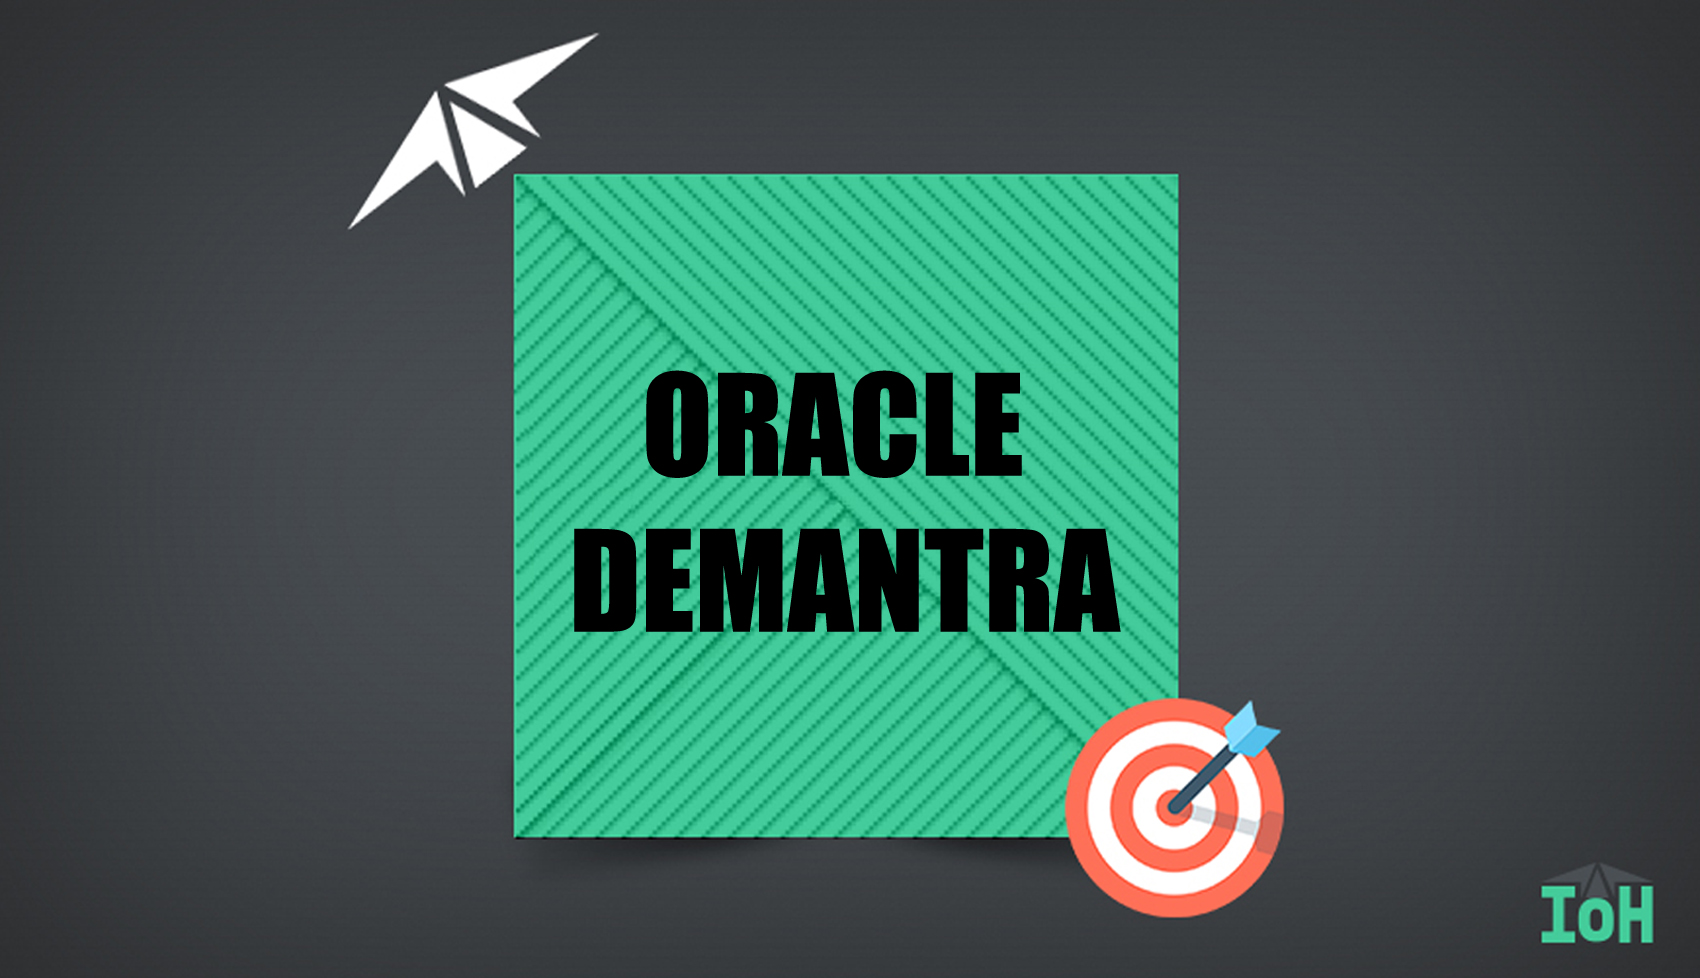 ORACLE DEMNTRA